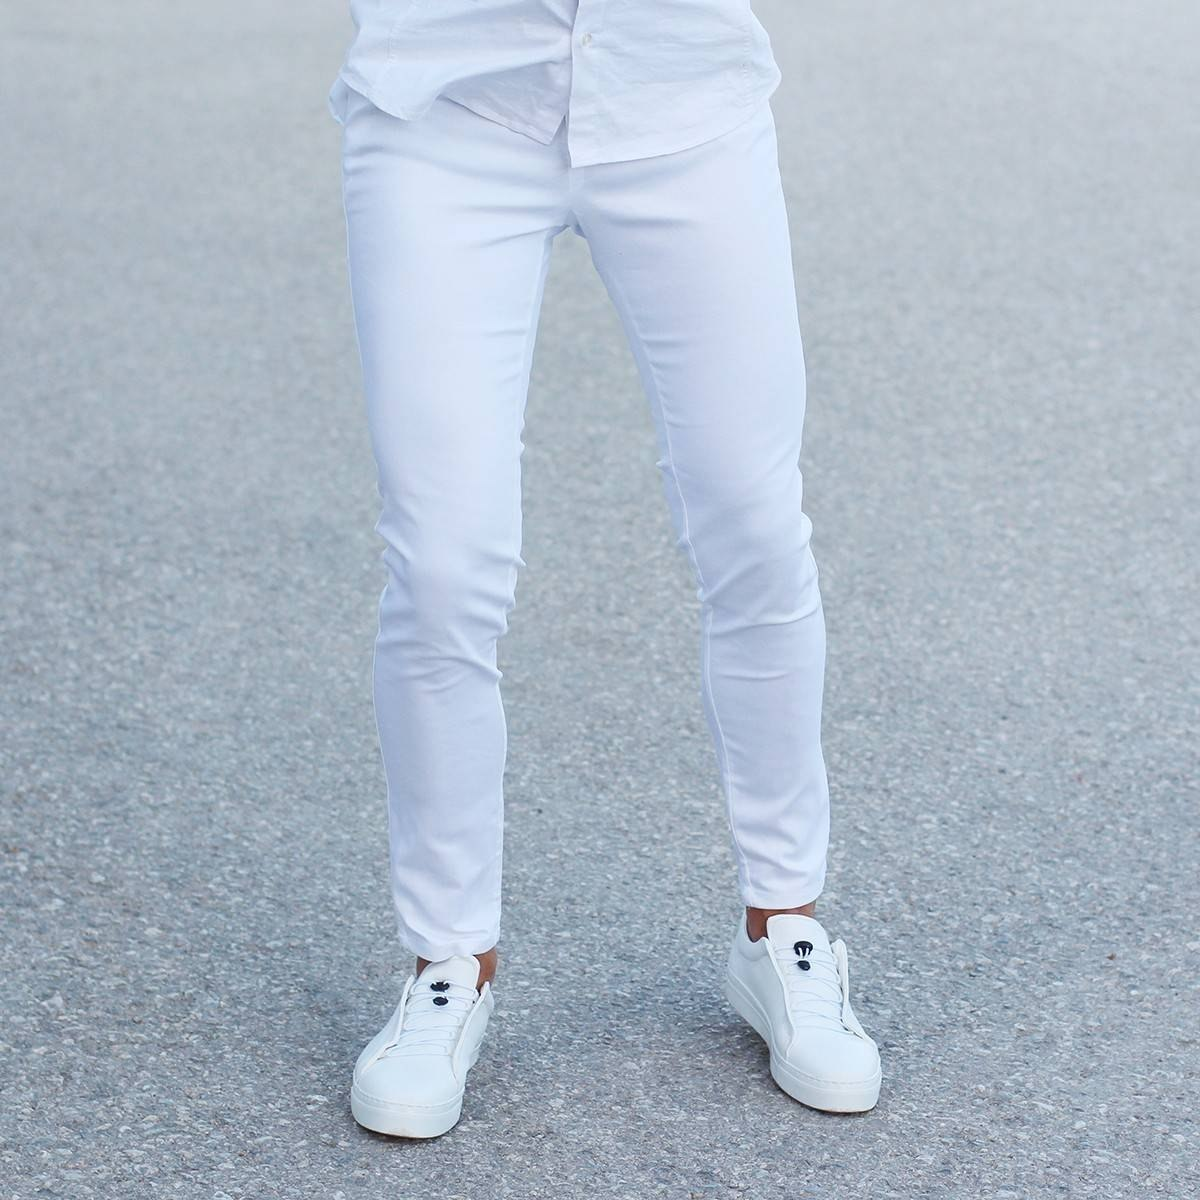 Men's Skinny Trousers Cool Edition in New White MV Jeans Collection - 1